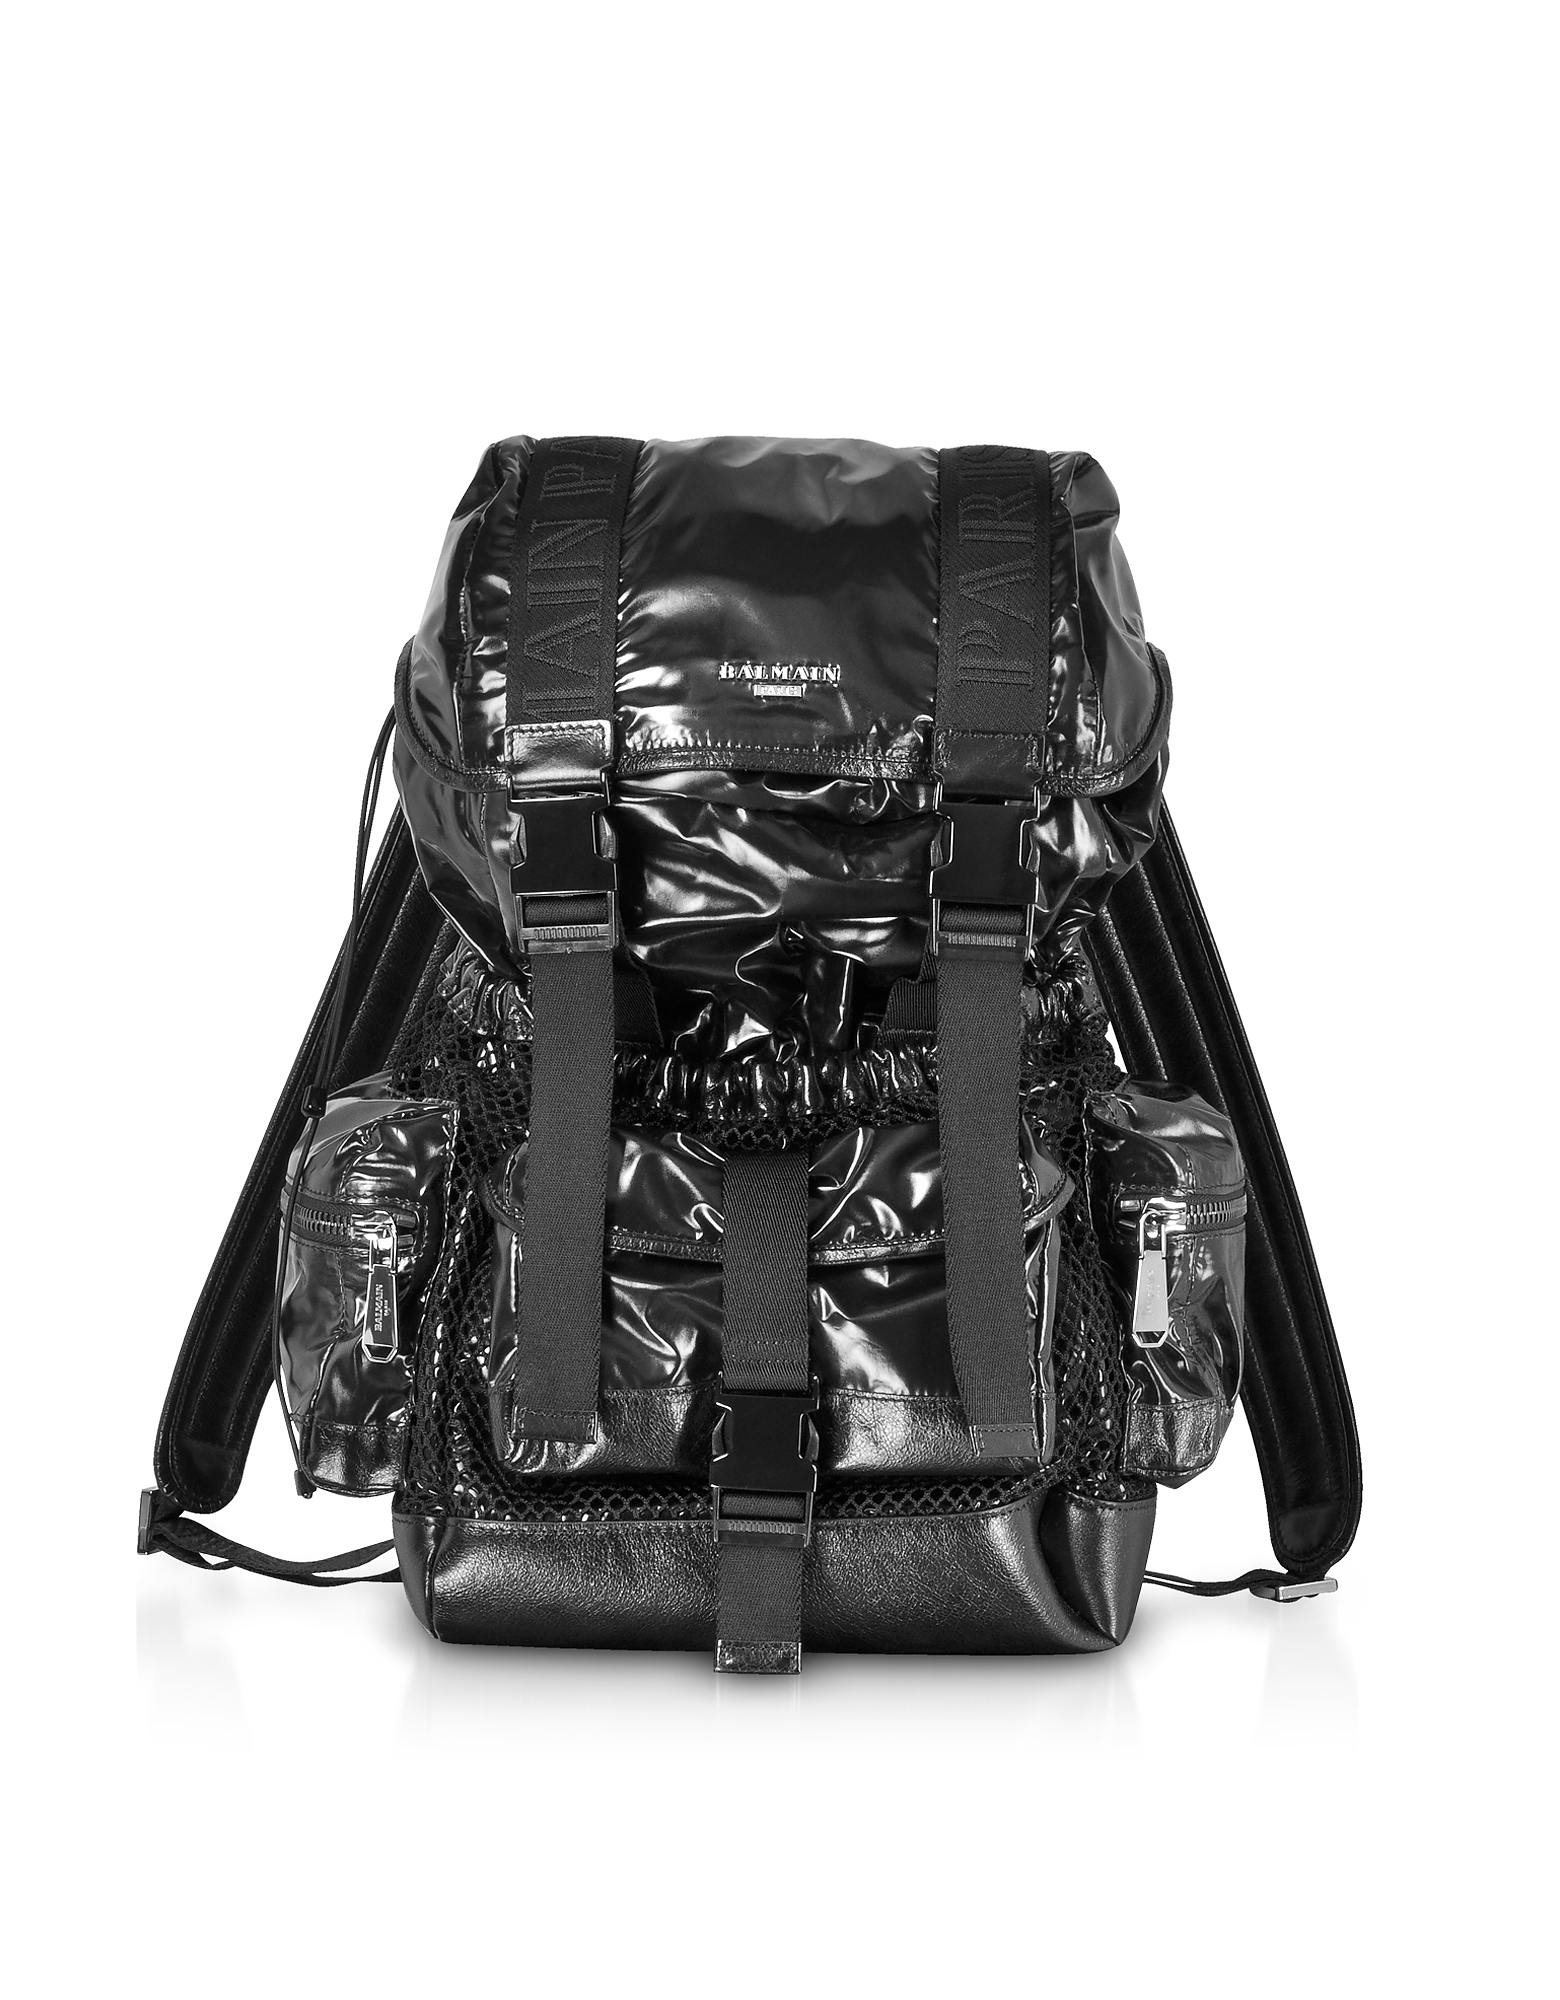 Black Shiny Nylon and Metallic Mesh Men's Backpack